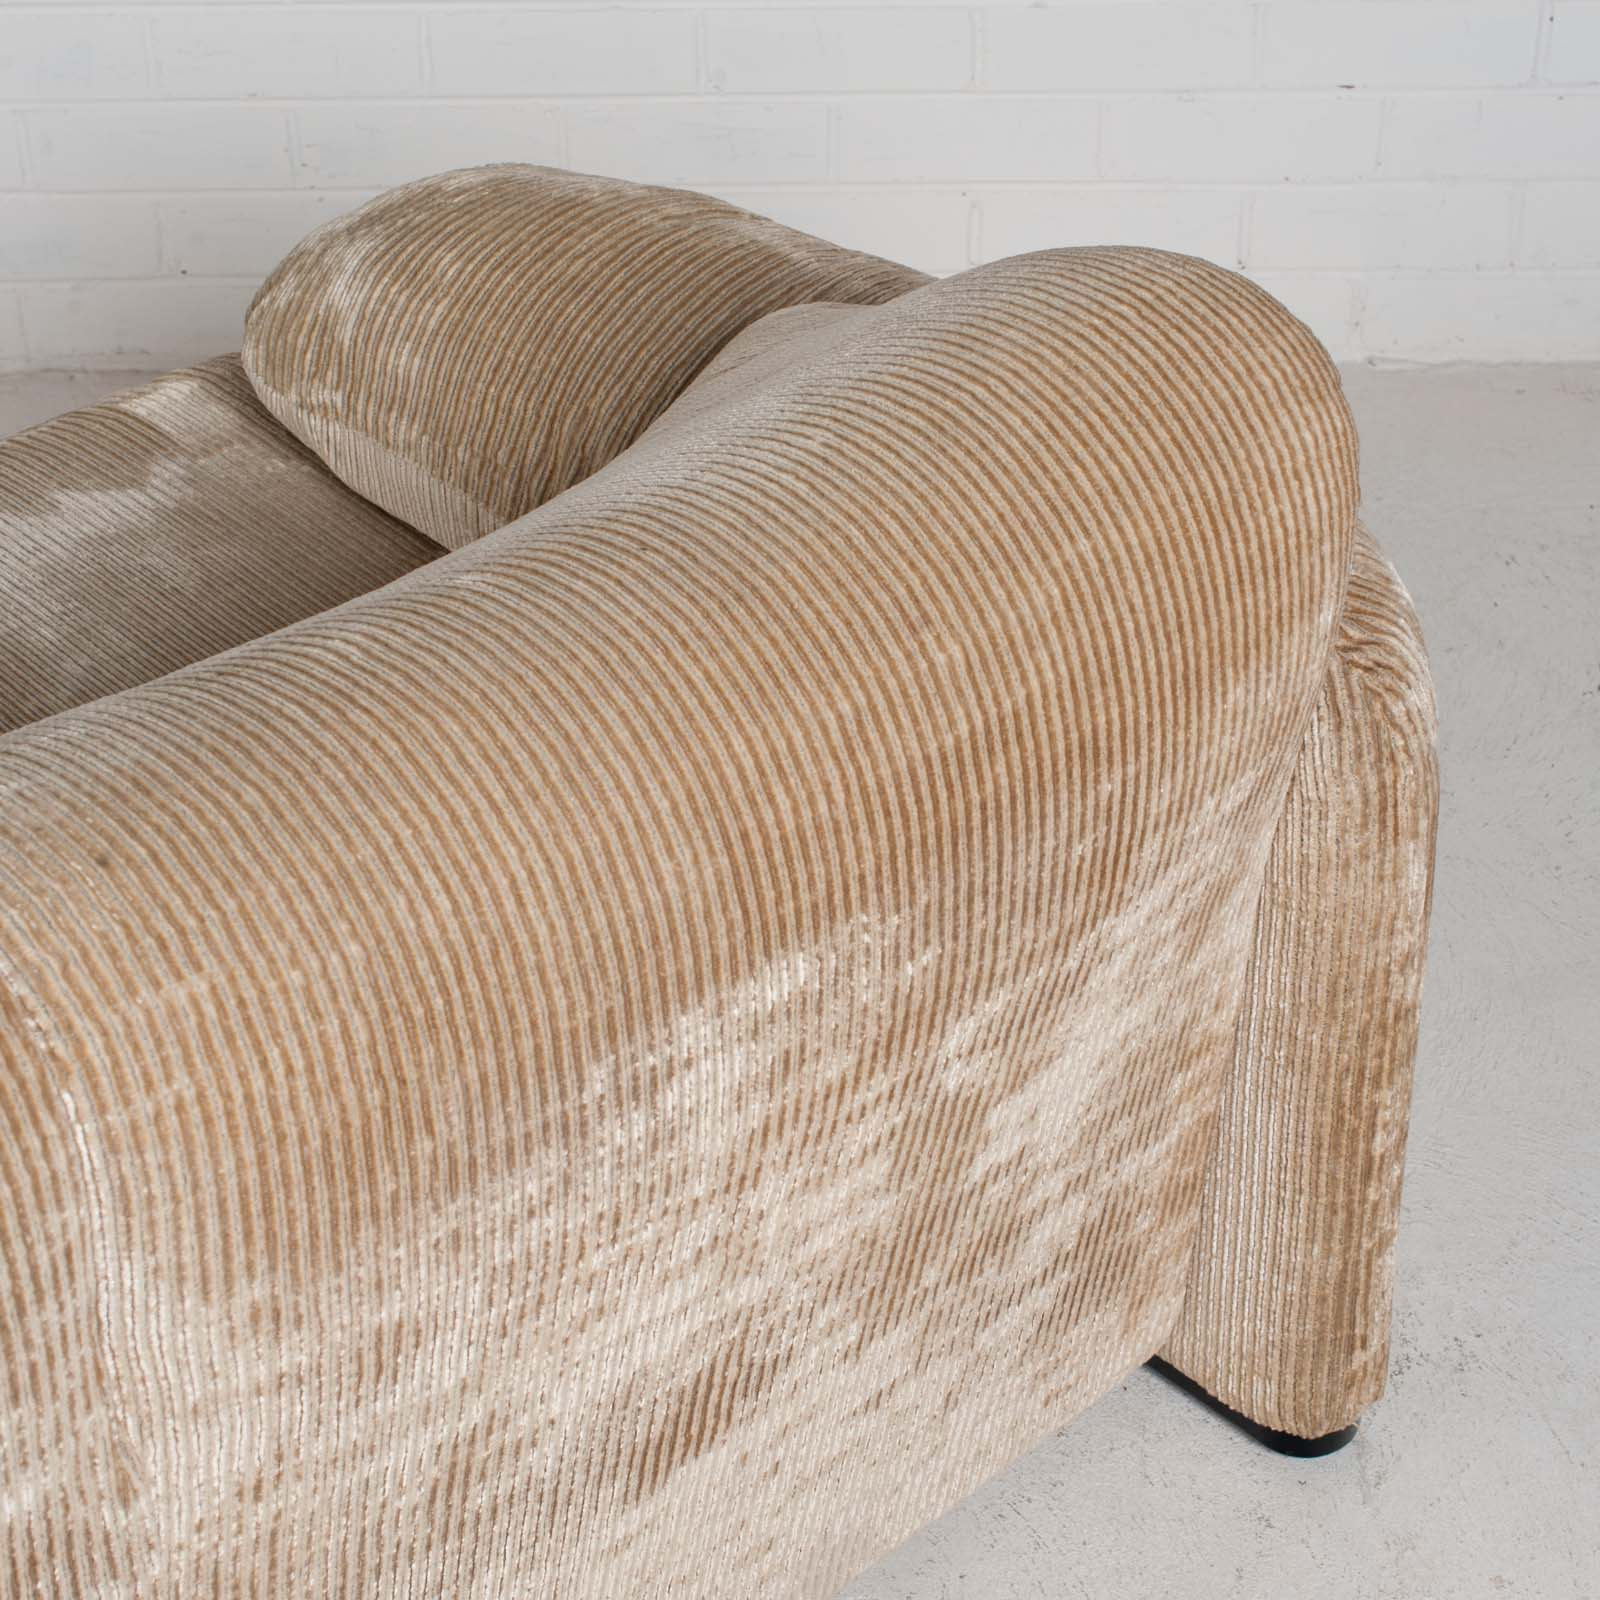 Maralunga 3 Seat Sofa By Vico Magistretti For Cassina In Original Upholstery 1970s Italy 024